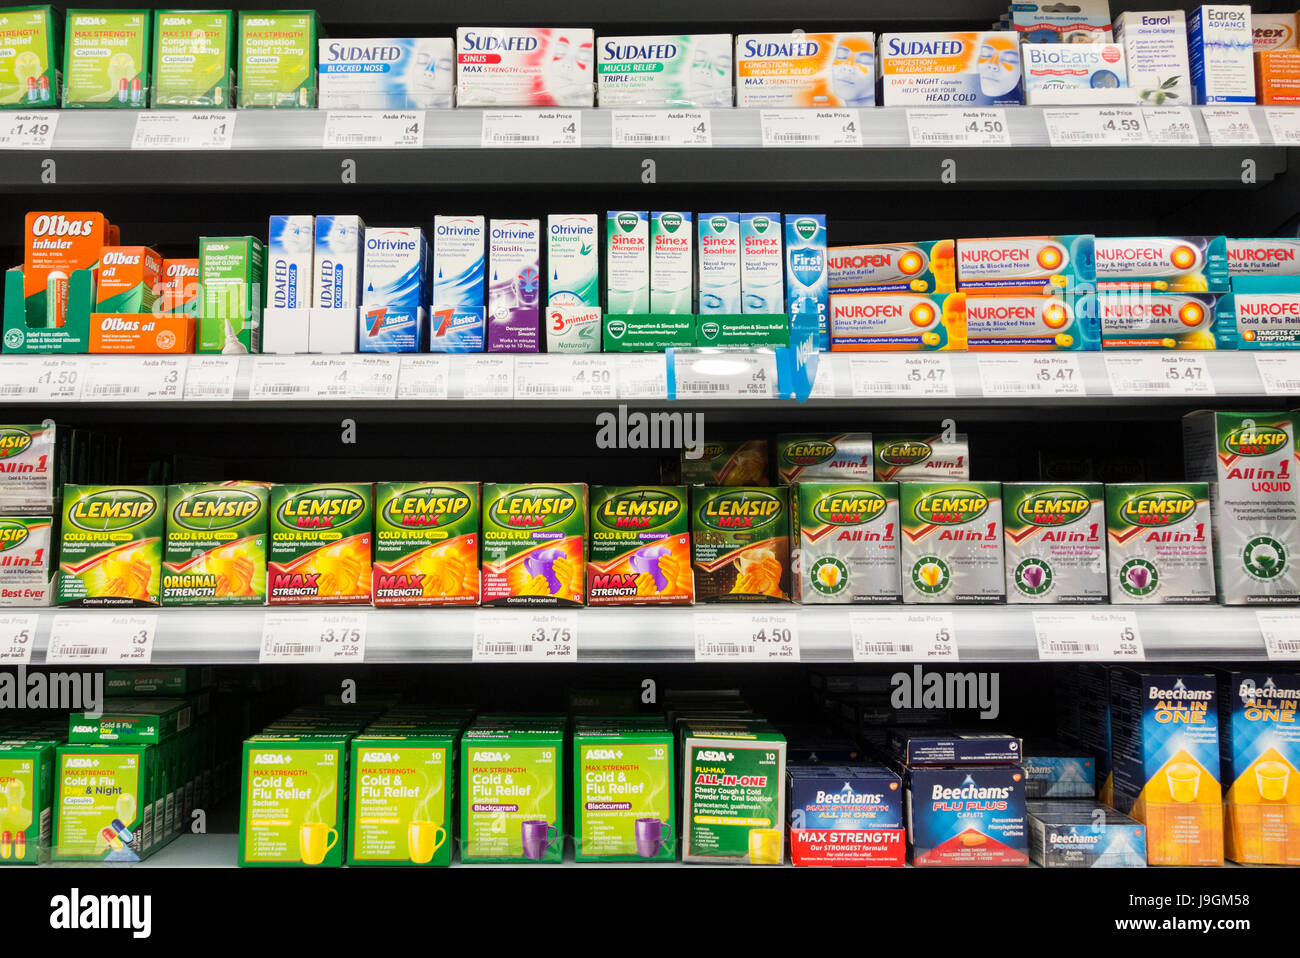 Lemsip and other cold and flu relief products in supermarket. UK - Stock Image